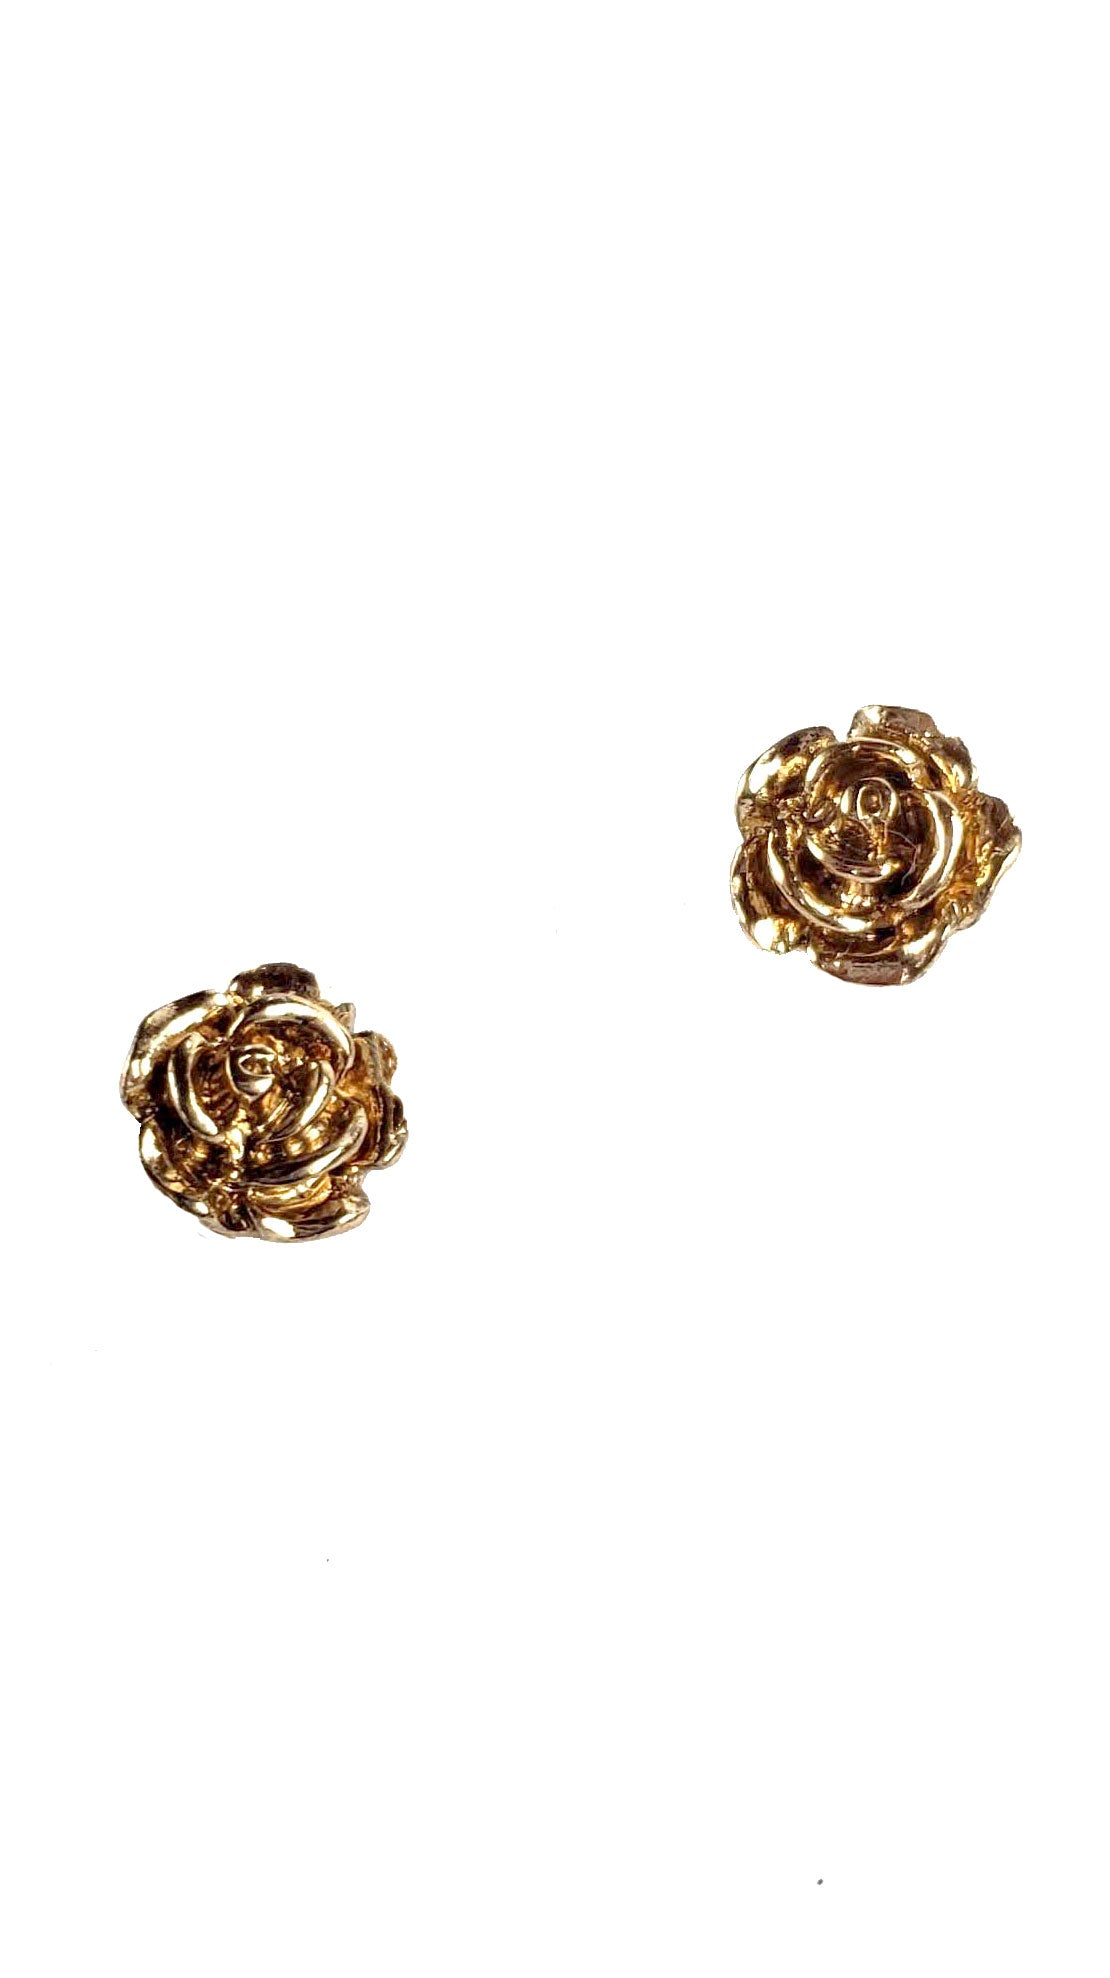 Vintage Little Rosebud Post Earrings